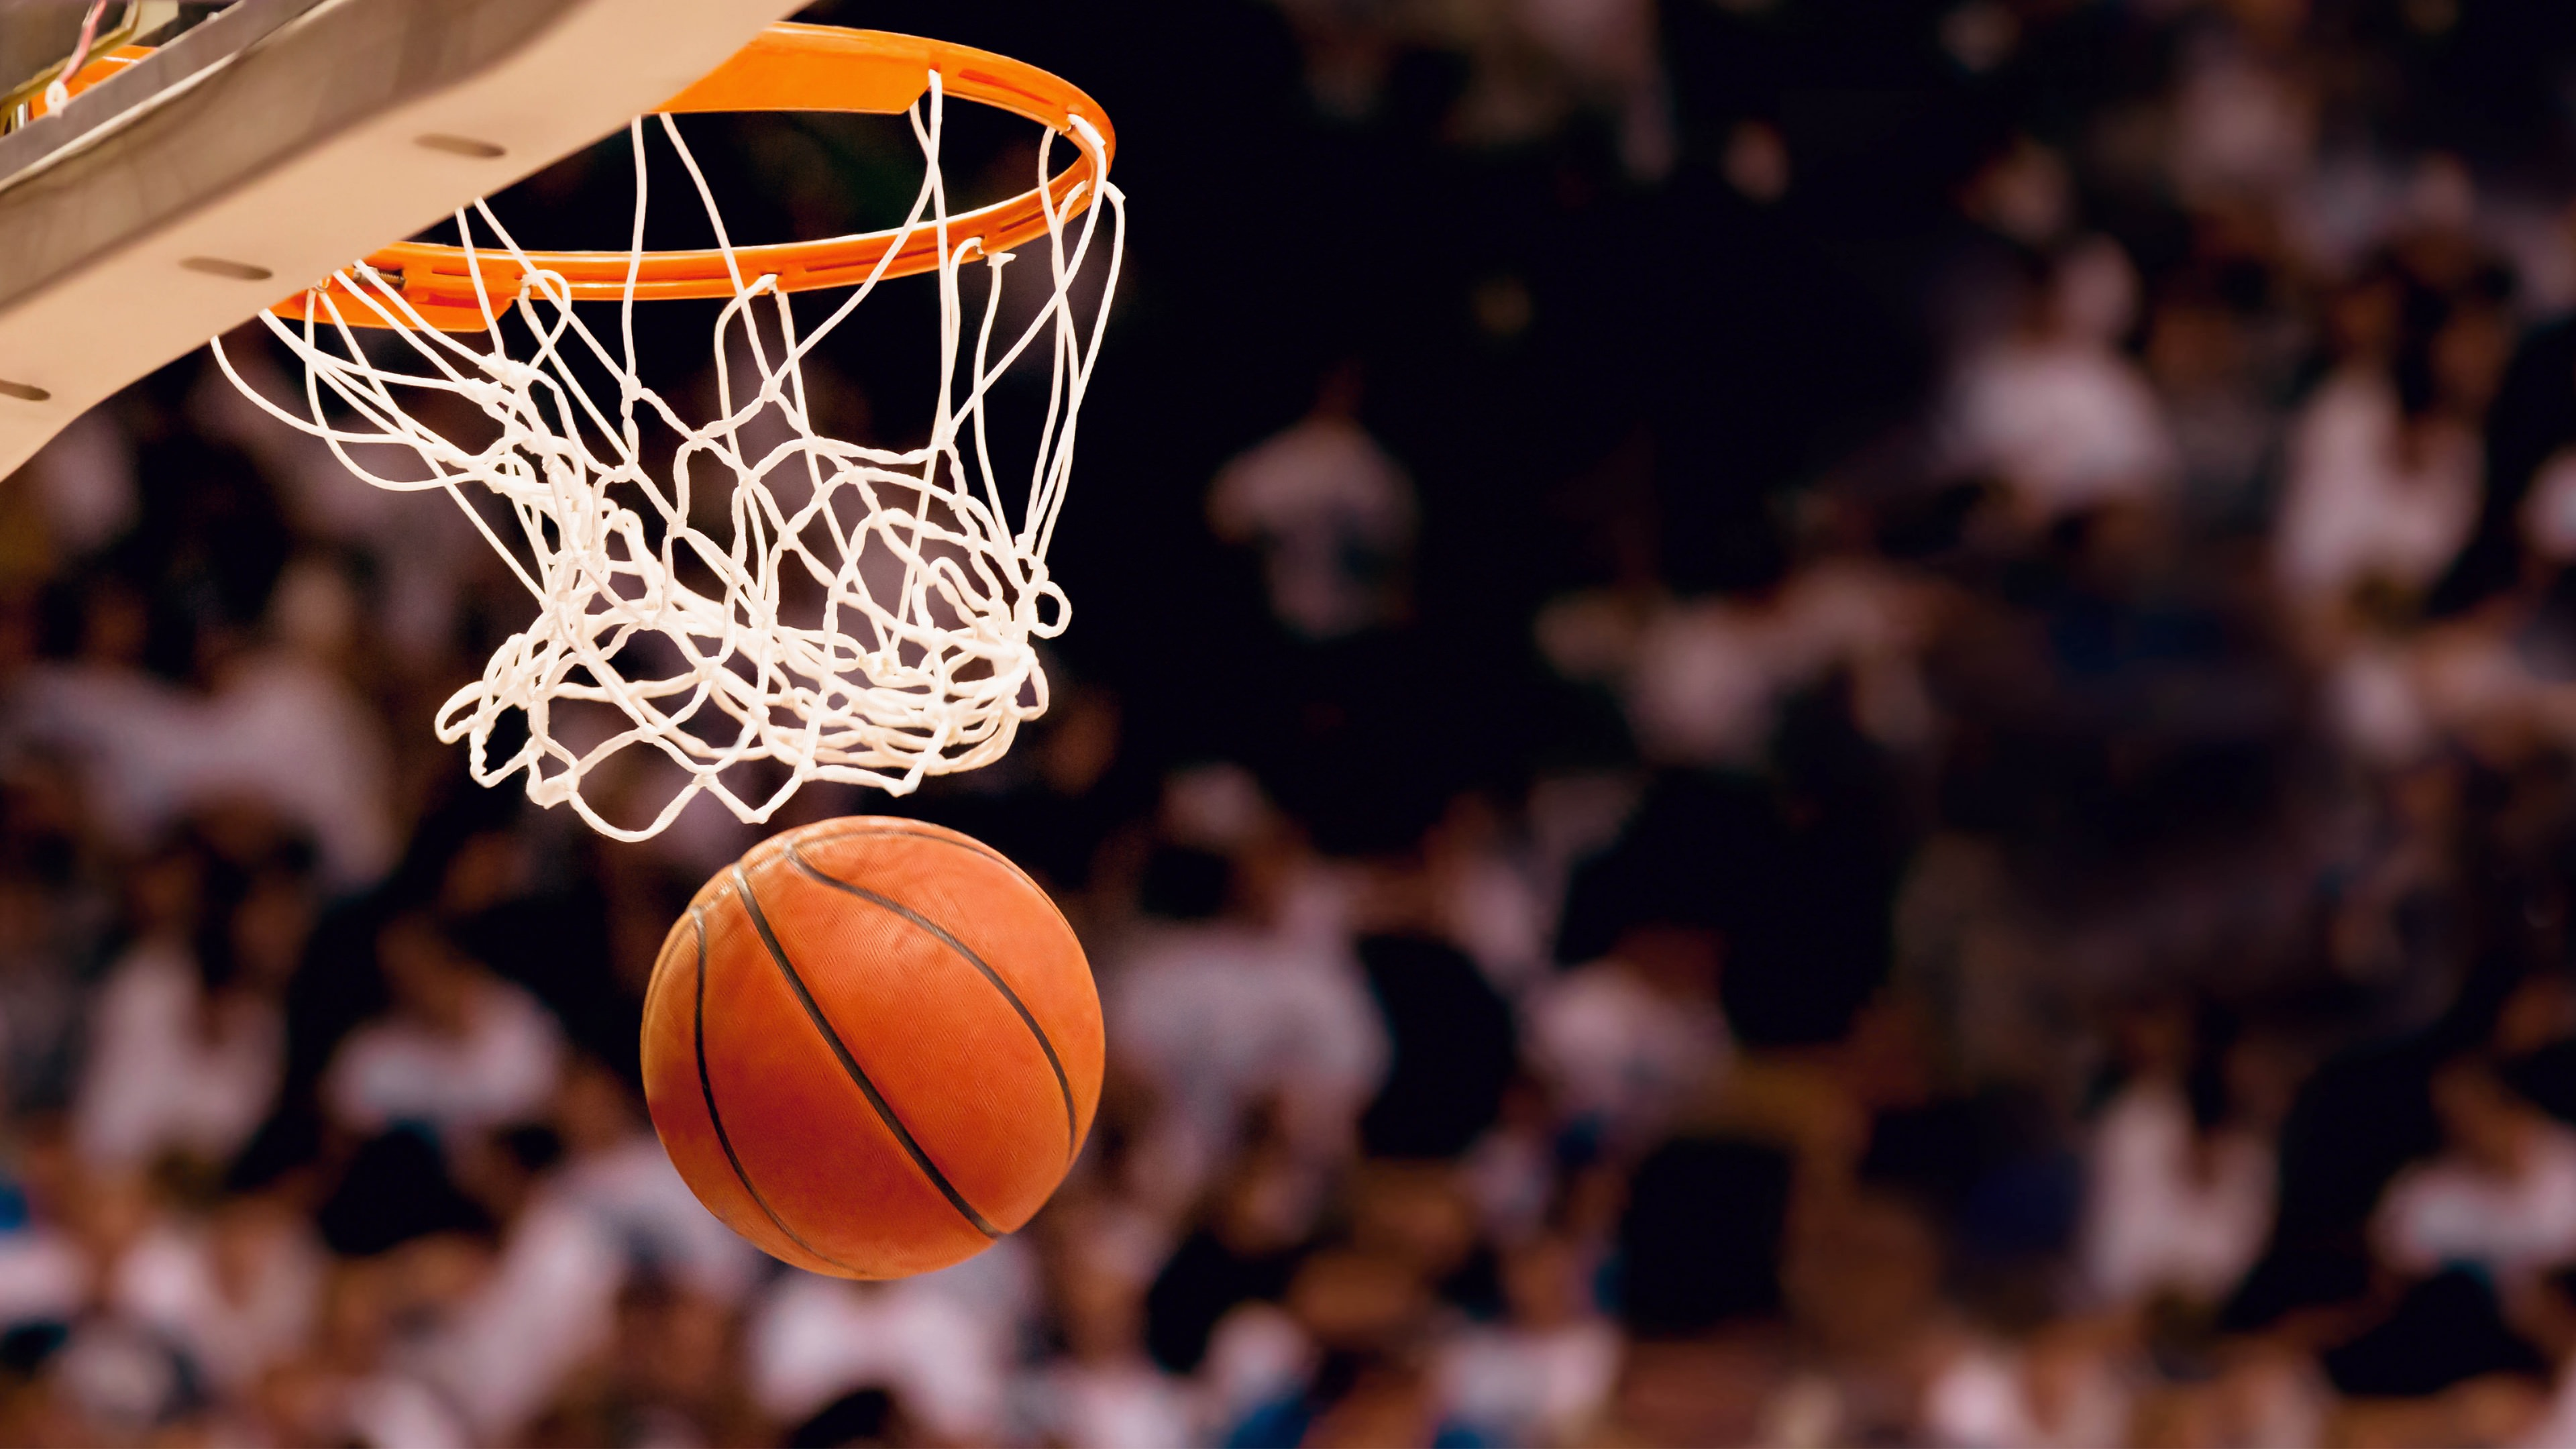 Basketball HD Wallpaper